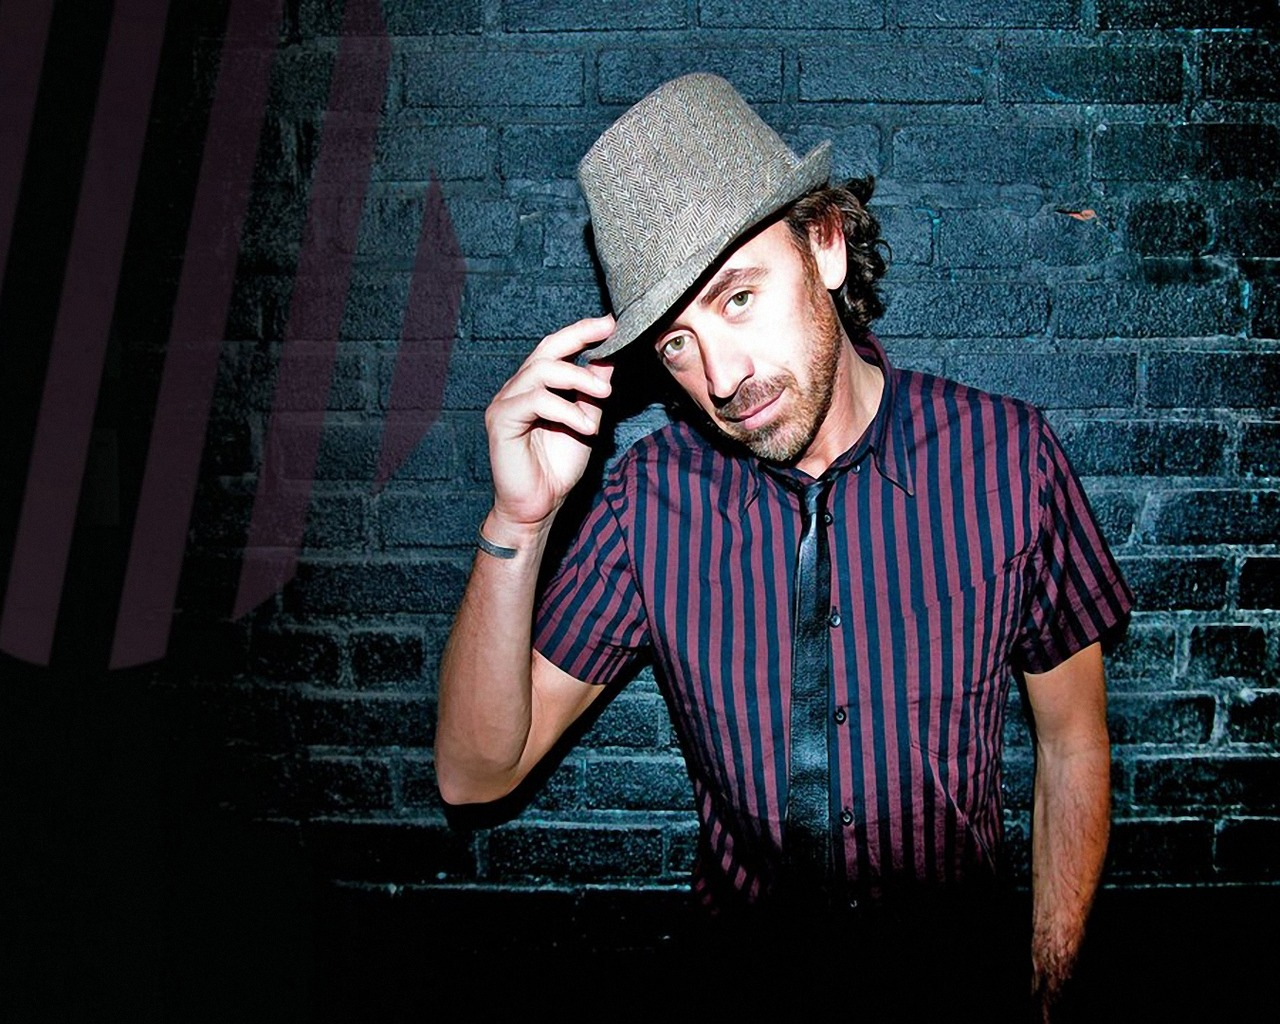 Download wallpaper 1280x1024 benny benassi wall hat hand 1280x1024